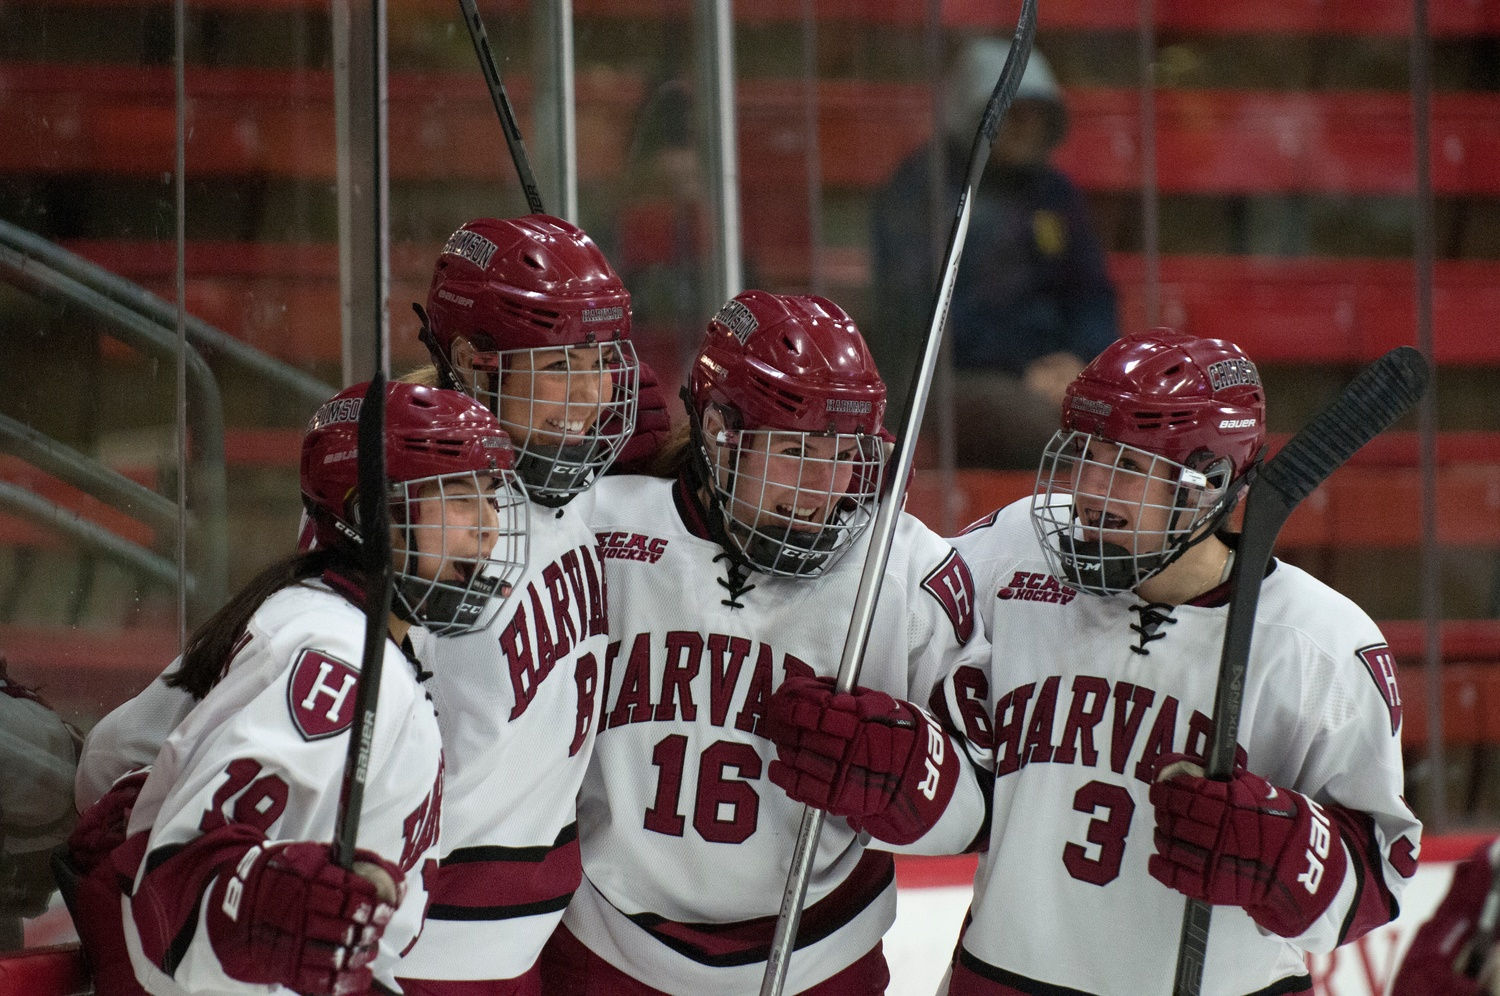 Junior forward Miye D'Oench (far left) celebrates during a 9-2 win over Boston University on Feb. 3 with three members of the Class of 2015—Hilary Crowe, Marissa Gedman, and Sarah Edney (from left to right).